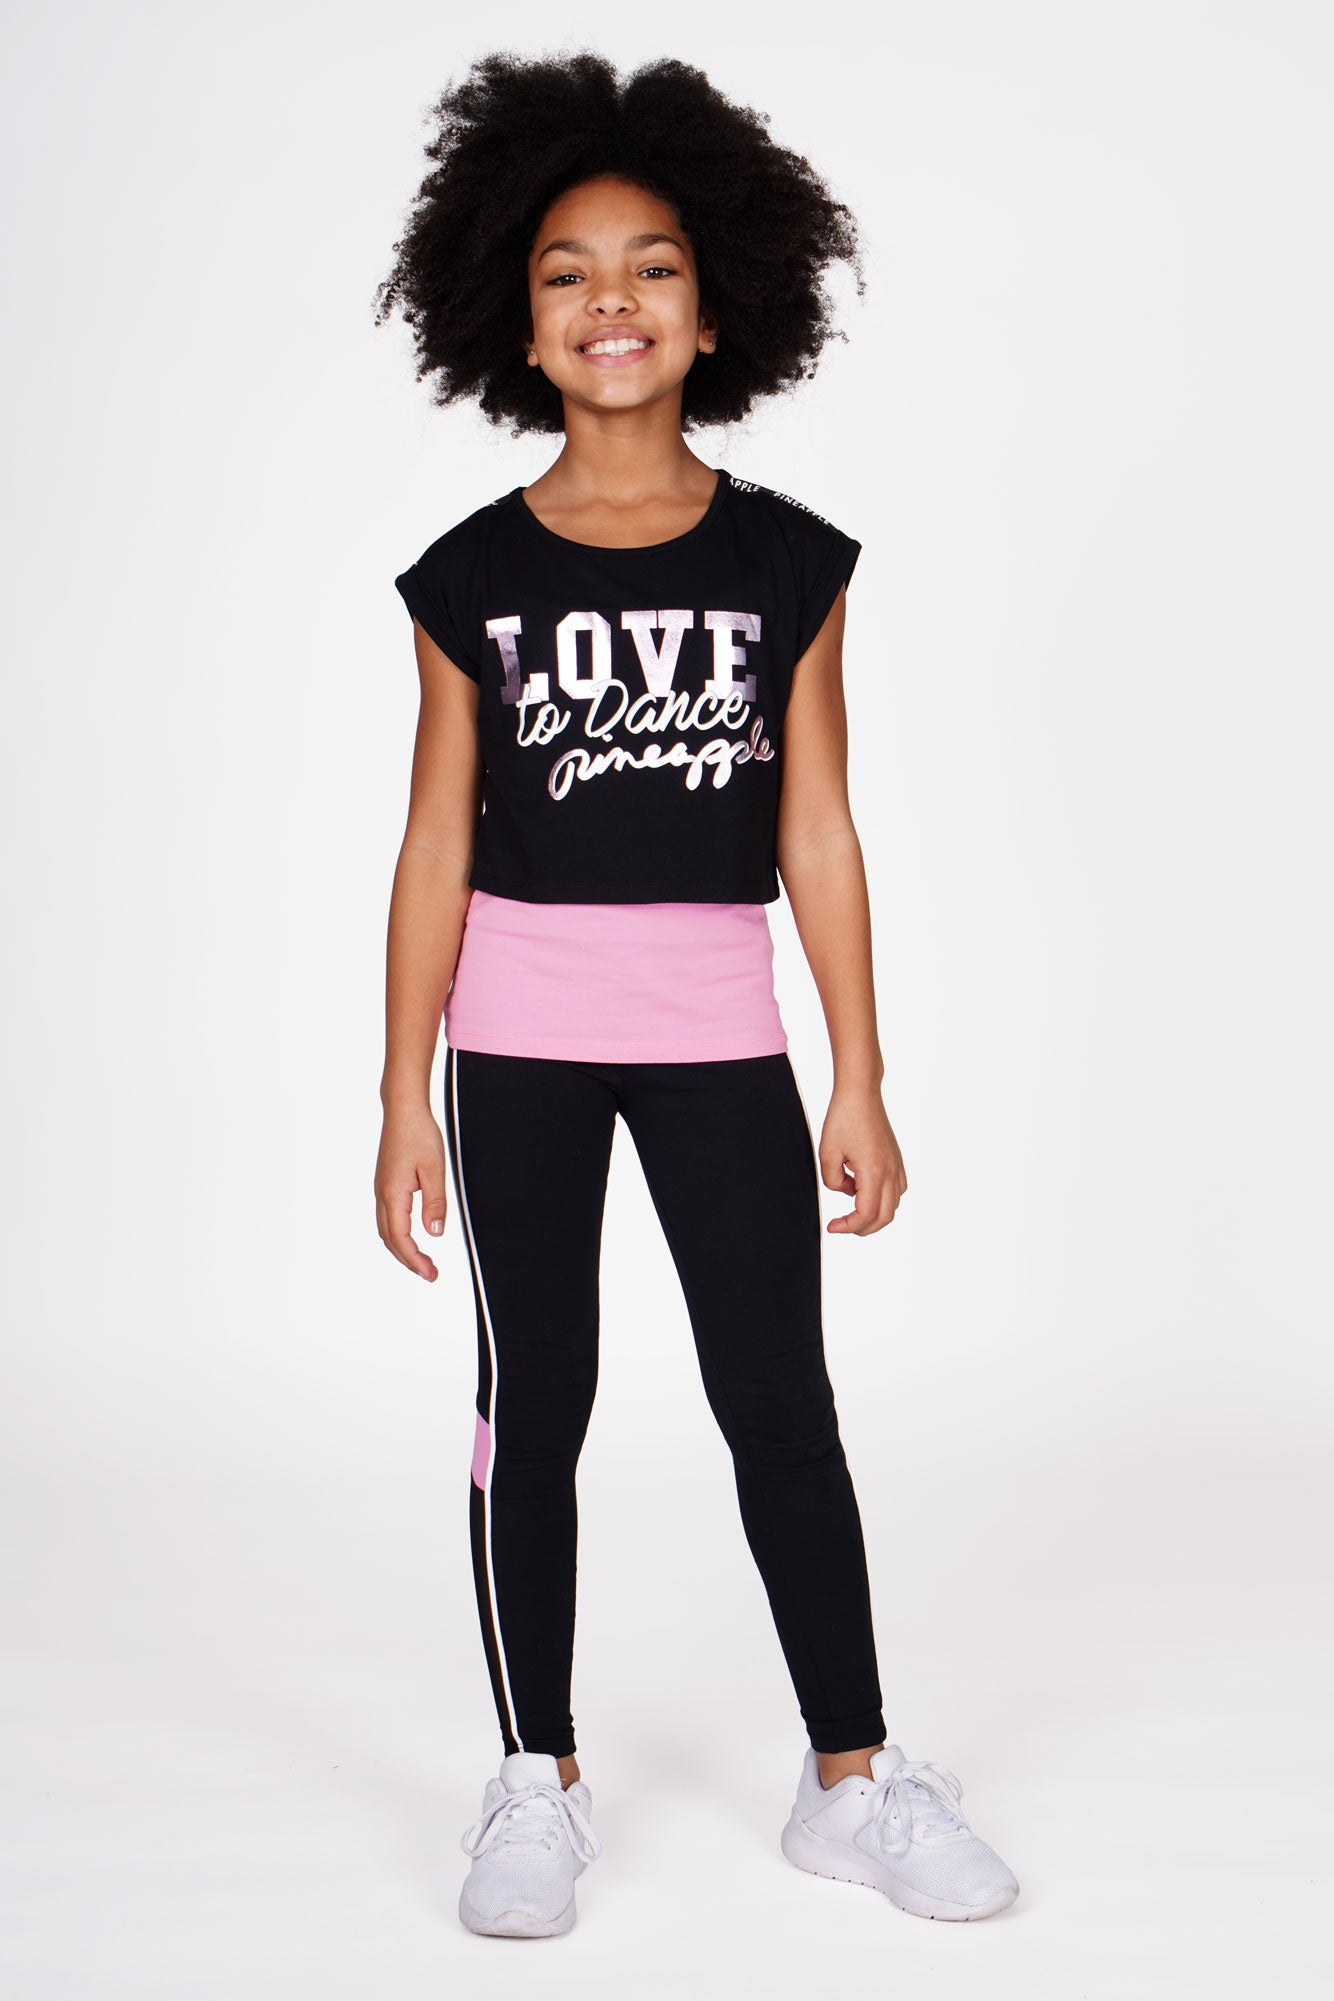 Girl wearing Double Layer Black and Pink Crop Top and Vest Set with Mesh Panel Black Leggings, full front view